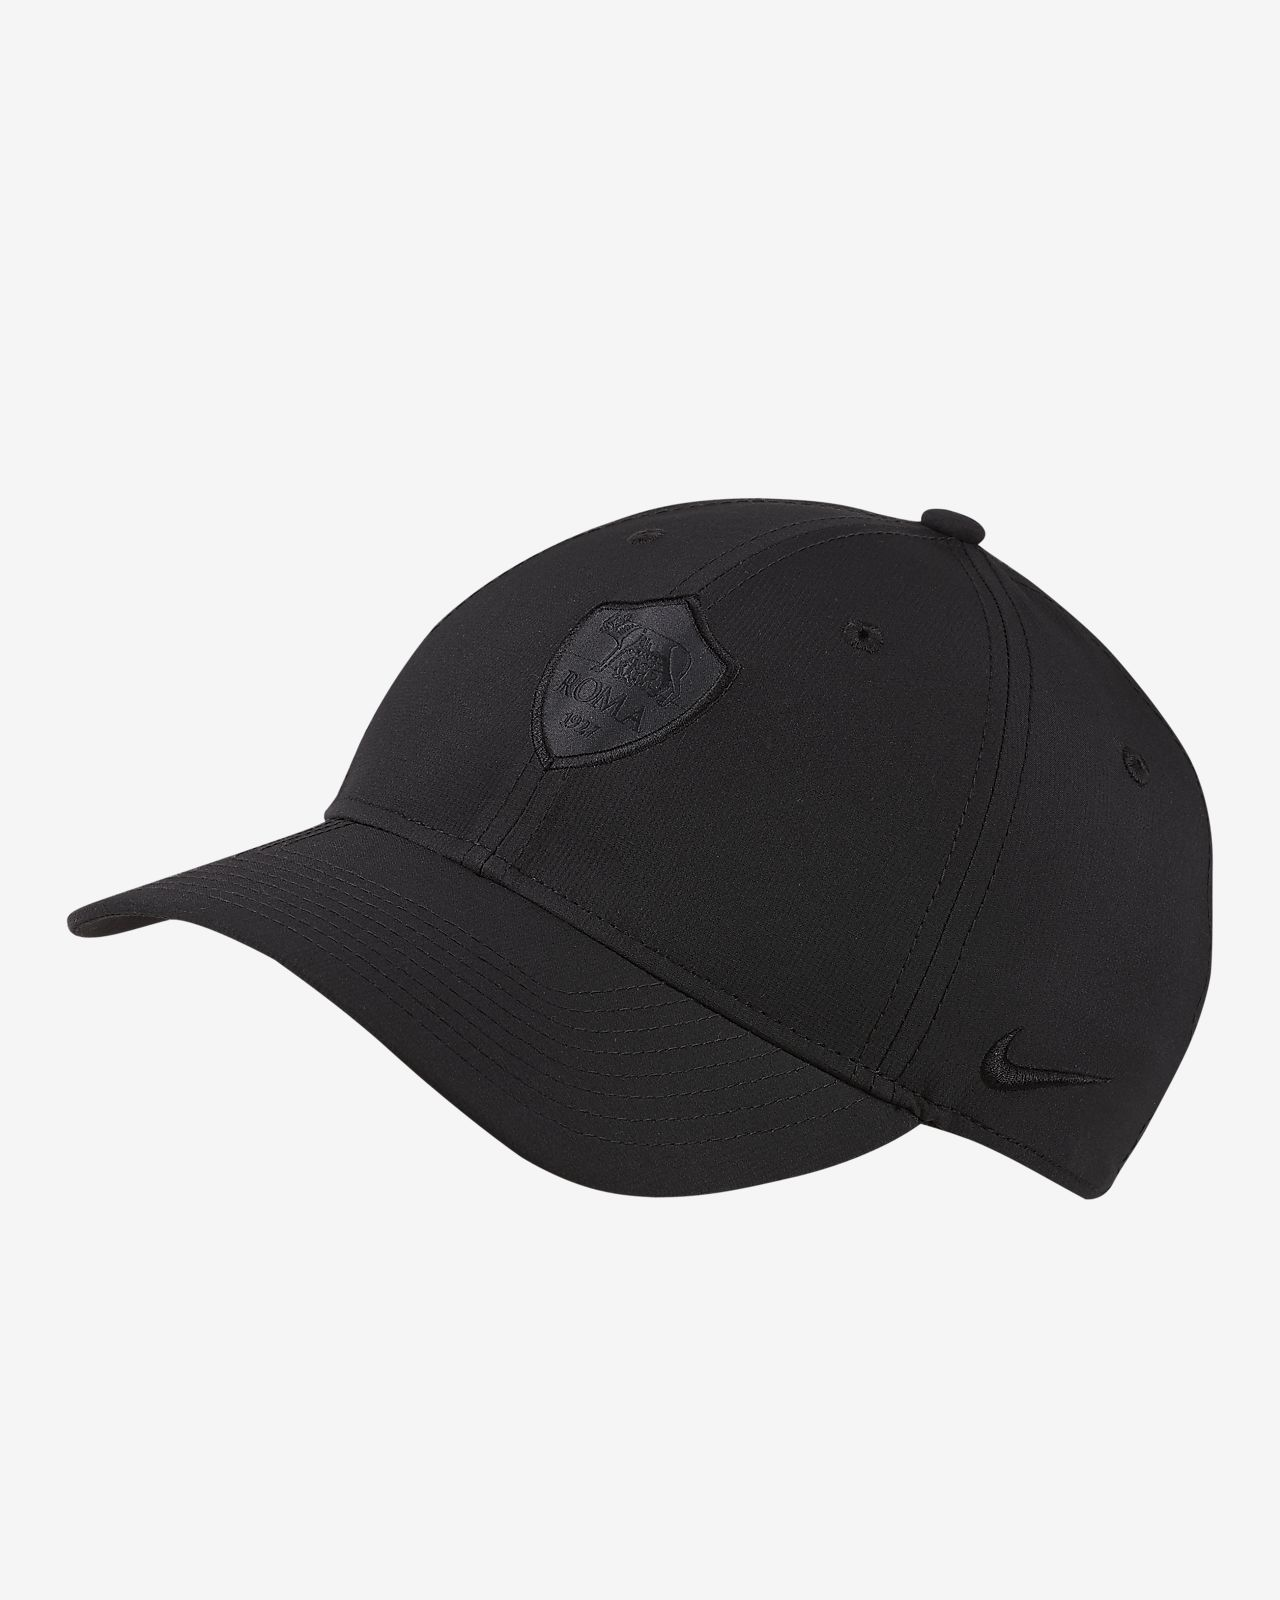 A.S. Roma Legacy91 Gorra regulable